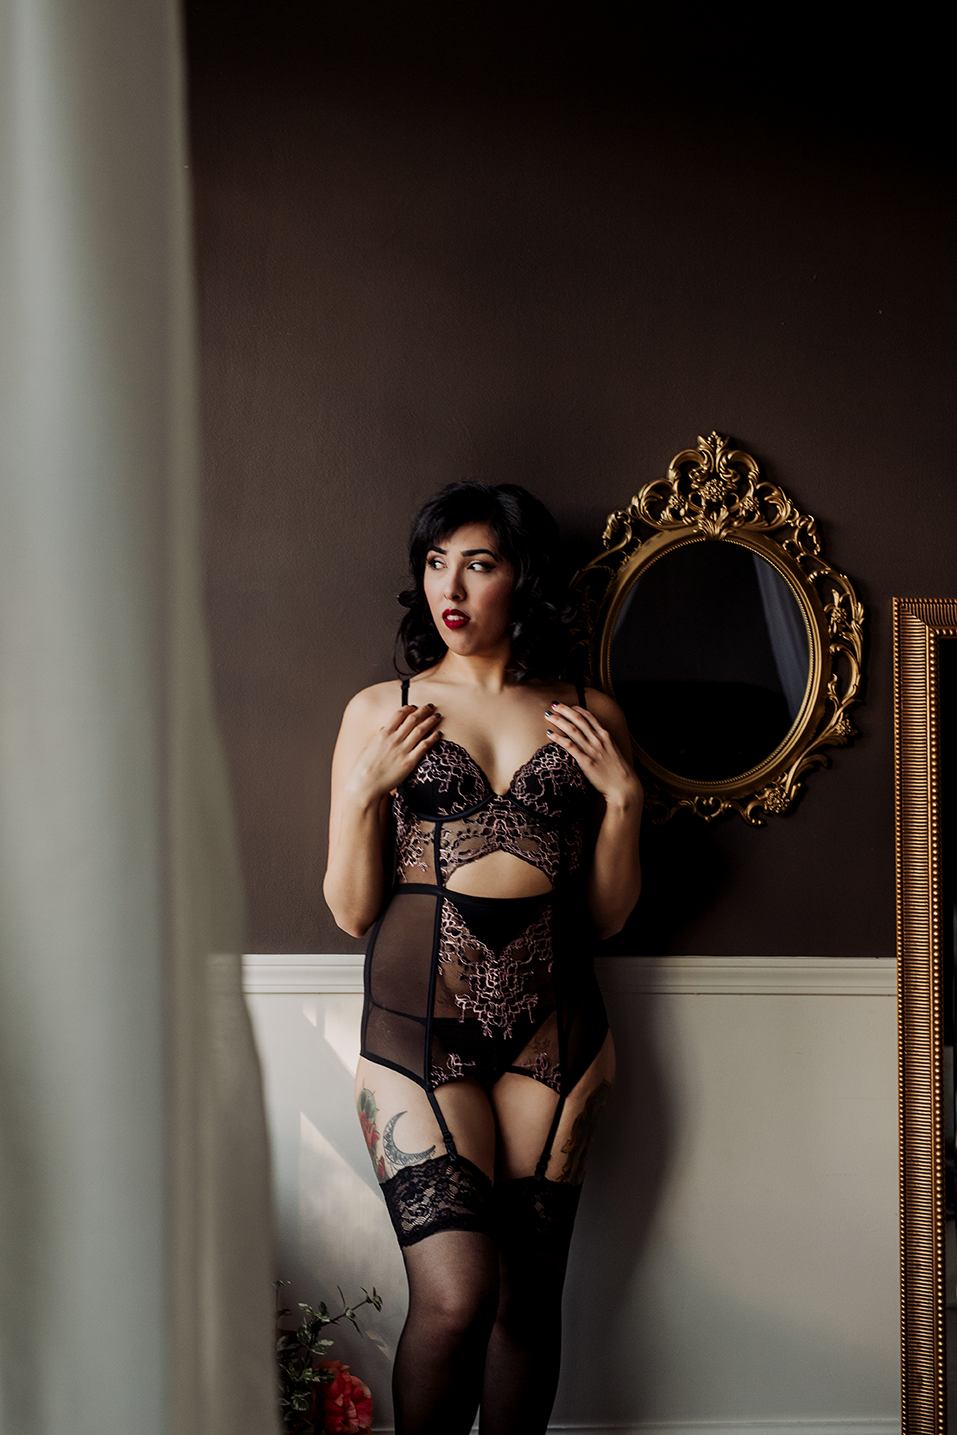 Vancouver-Island-Boudoir-Photography-12.png